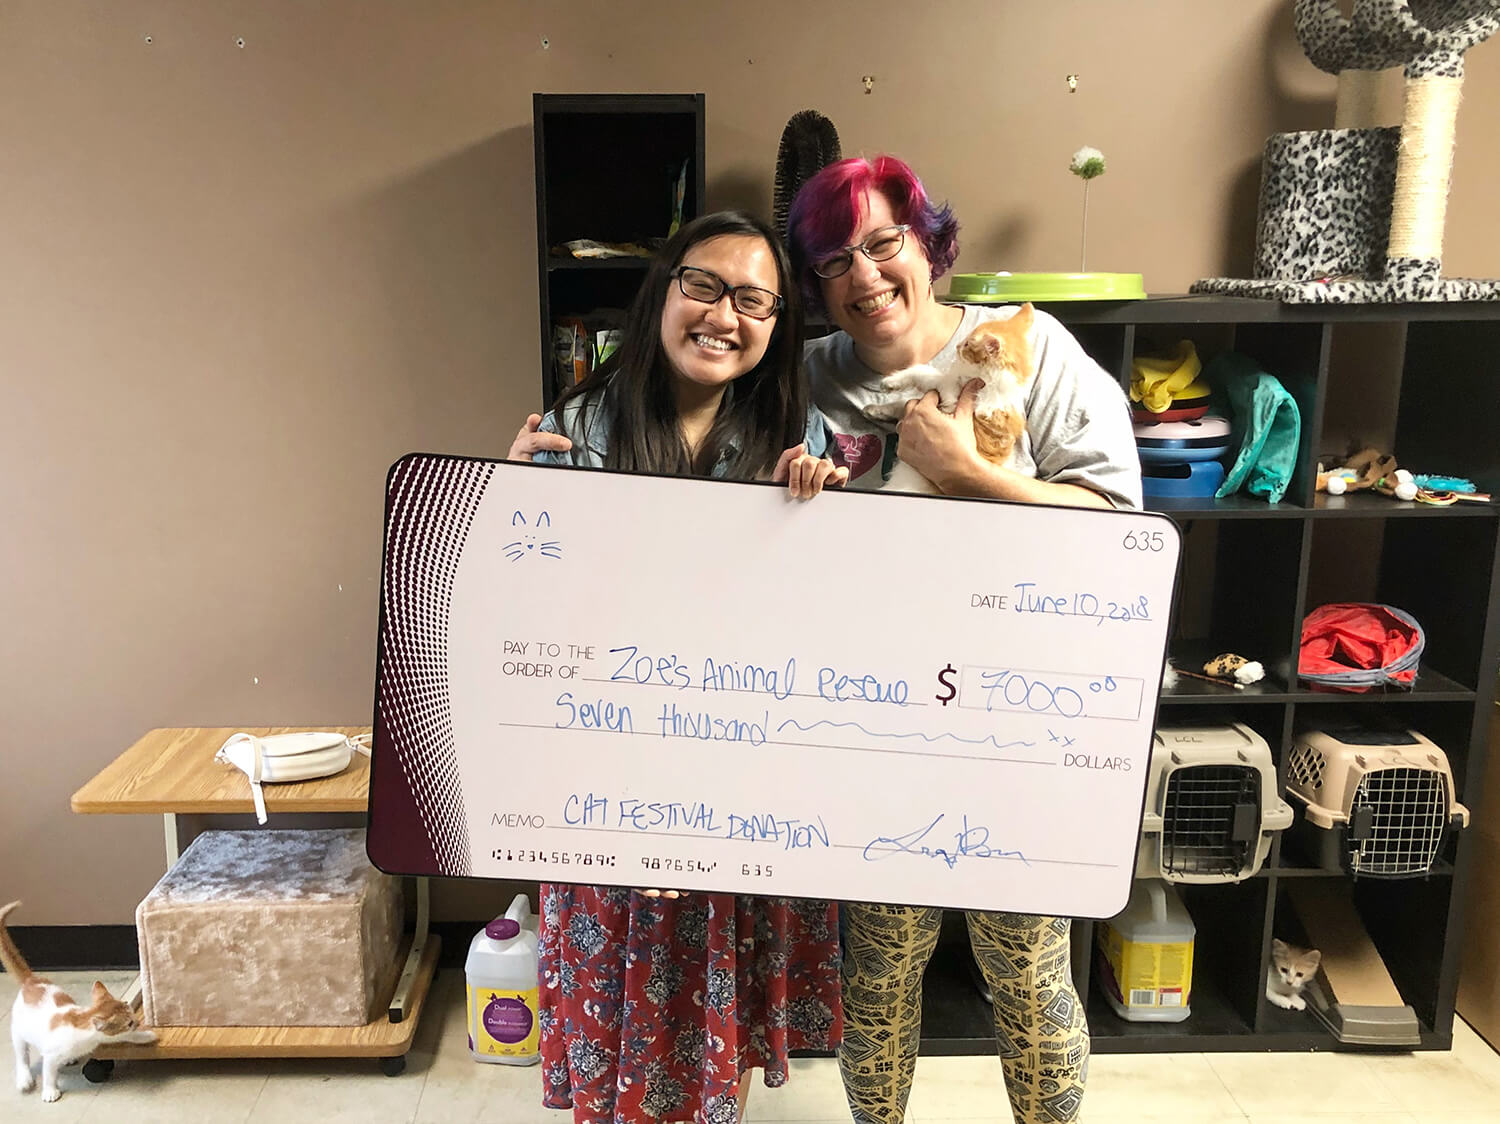 Edmonton International Cat Festival - Zoes Animal Rescue Donation